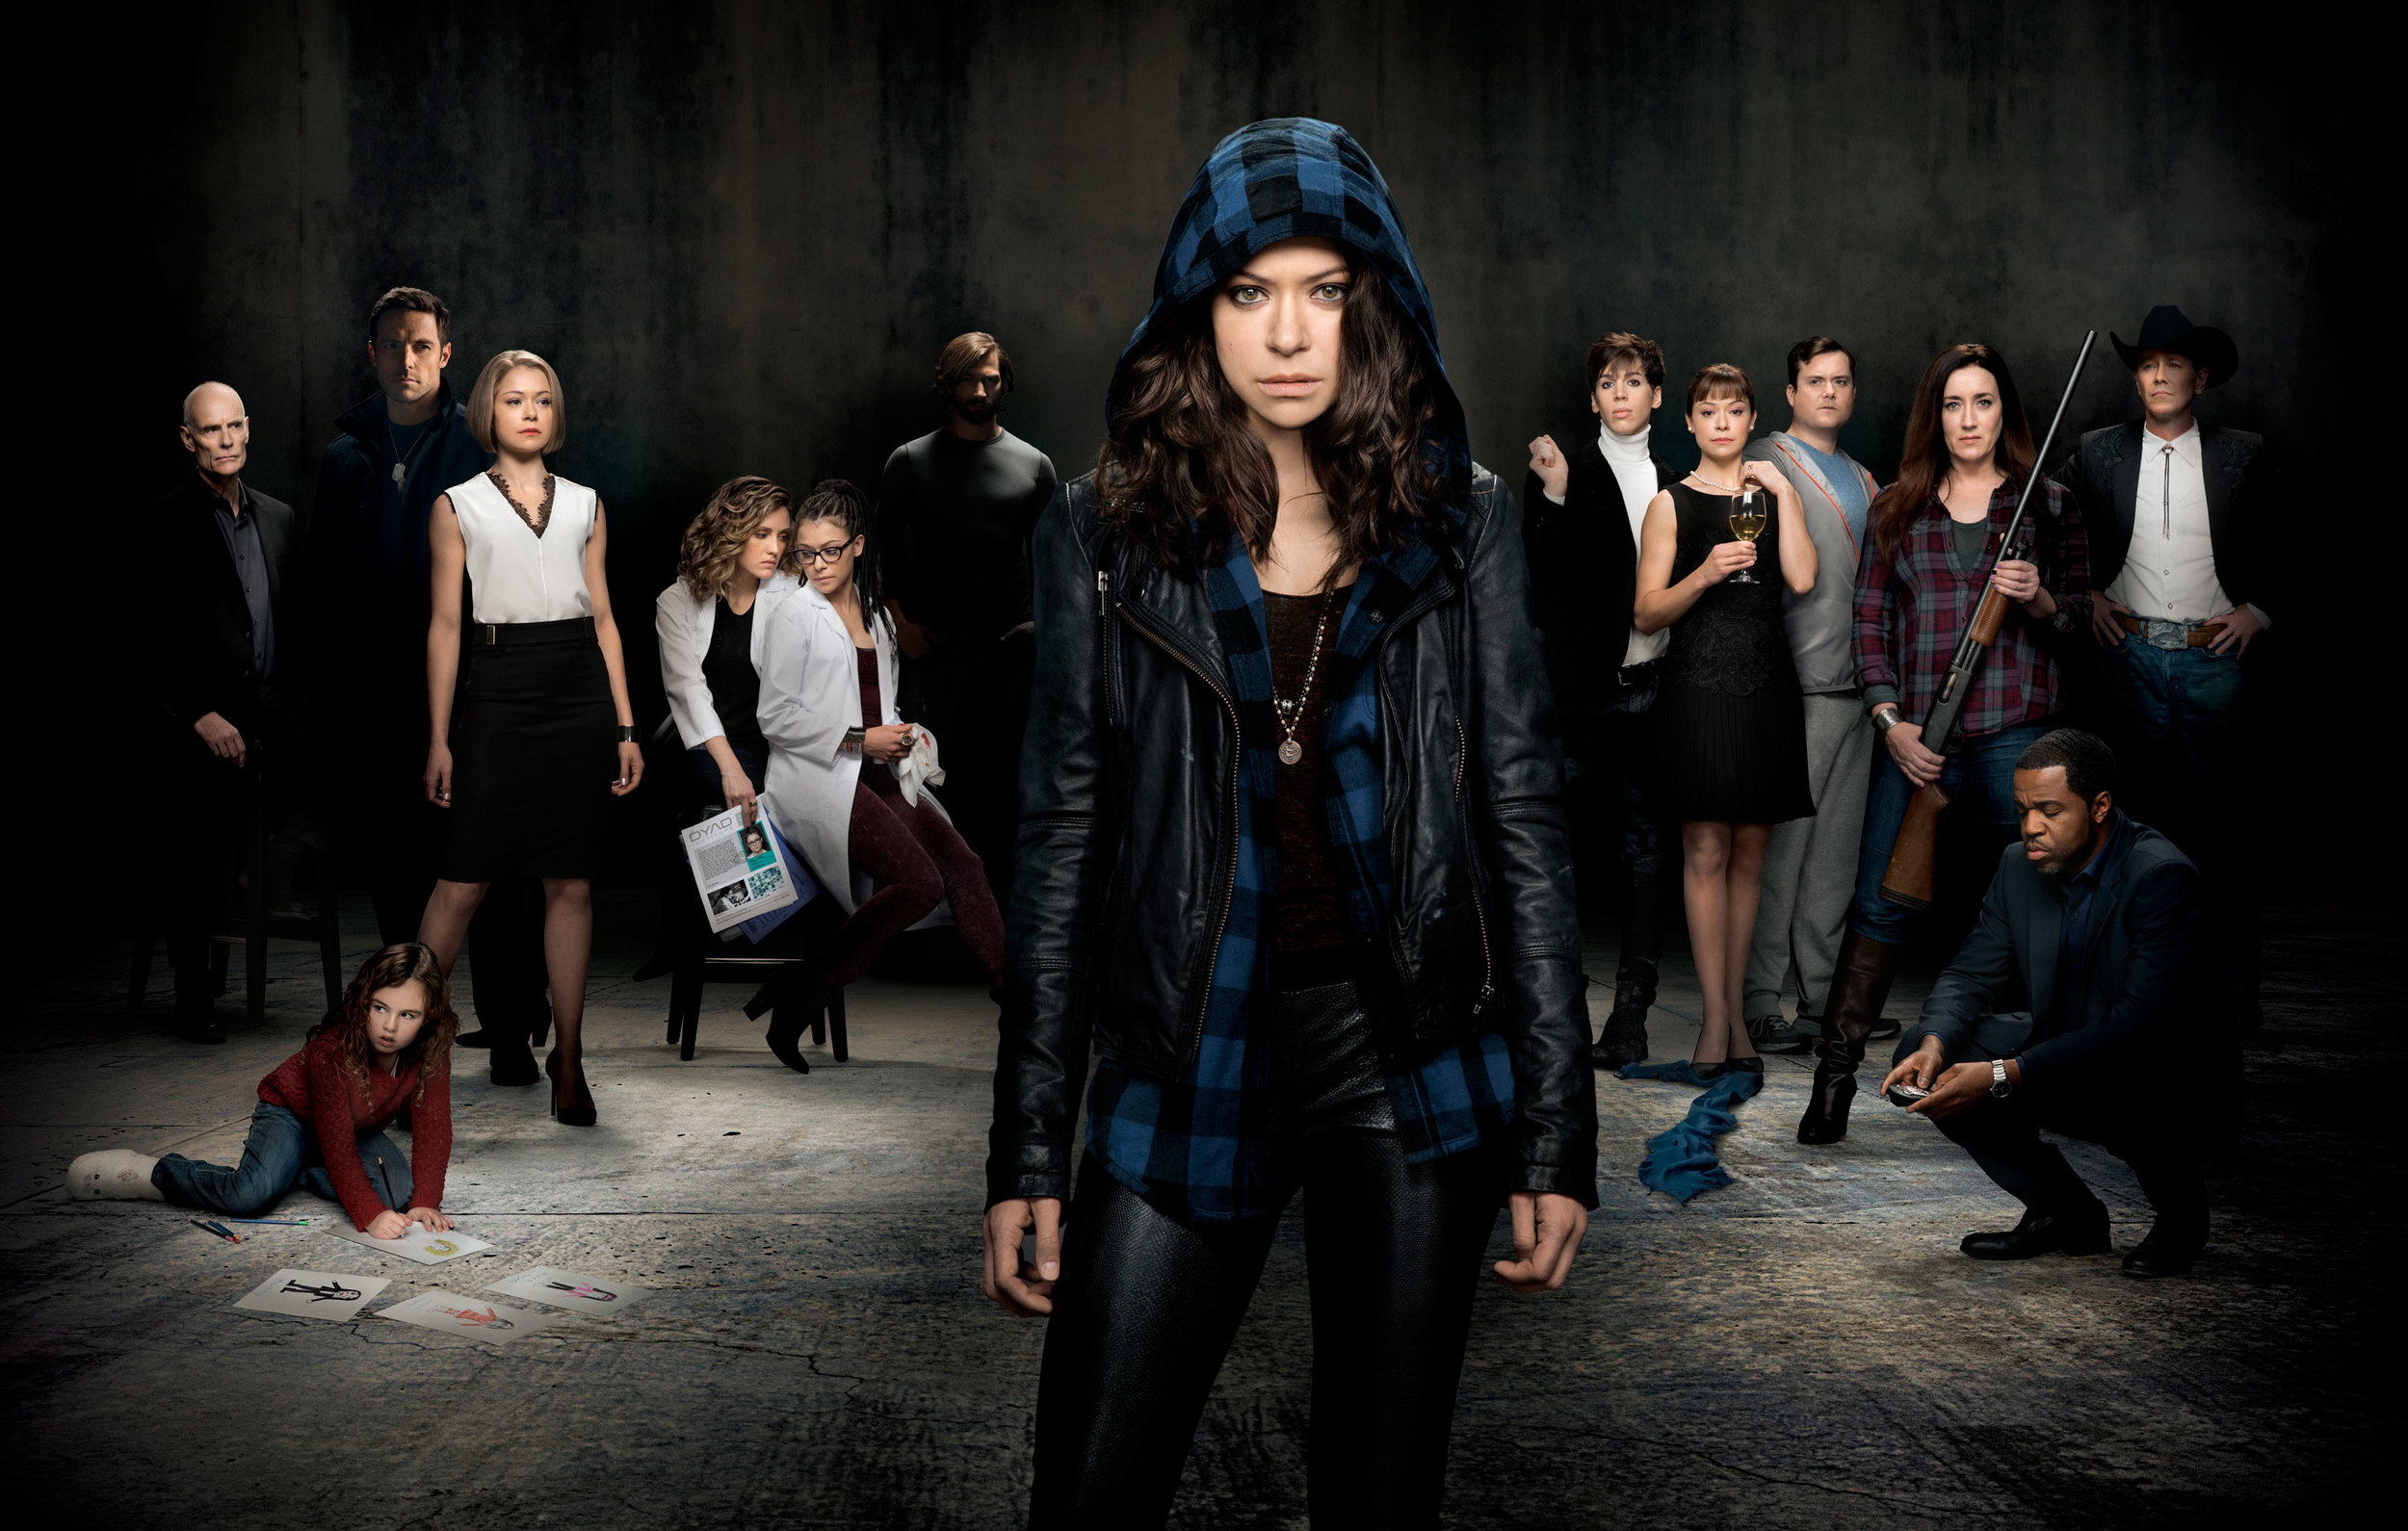 you should be: watching orphan black